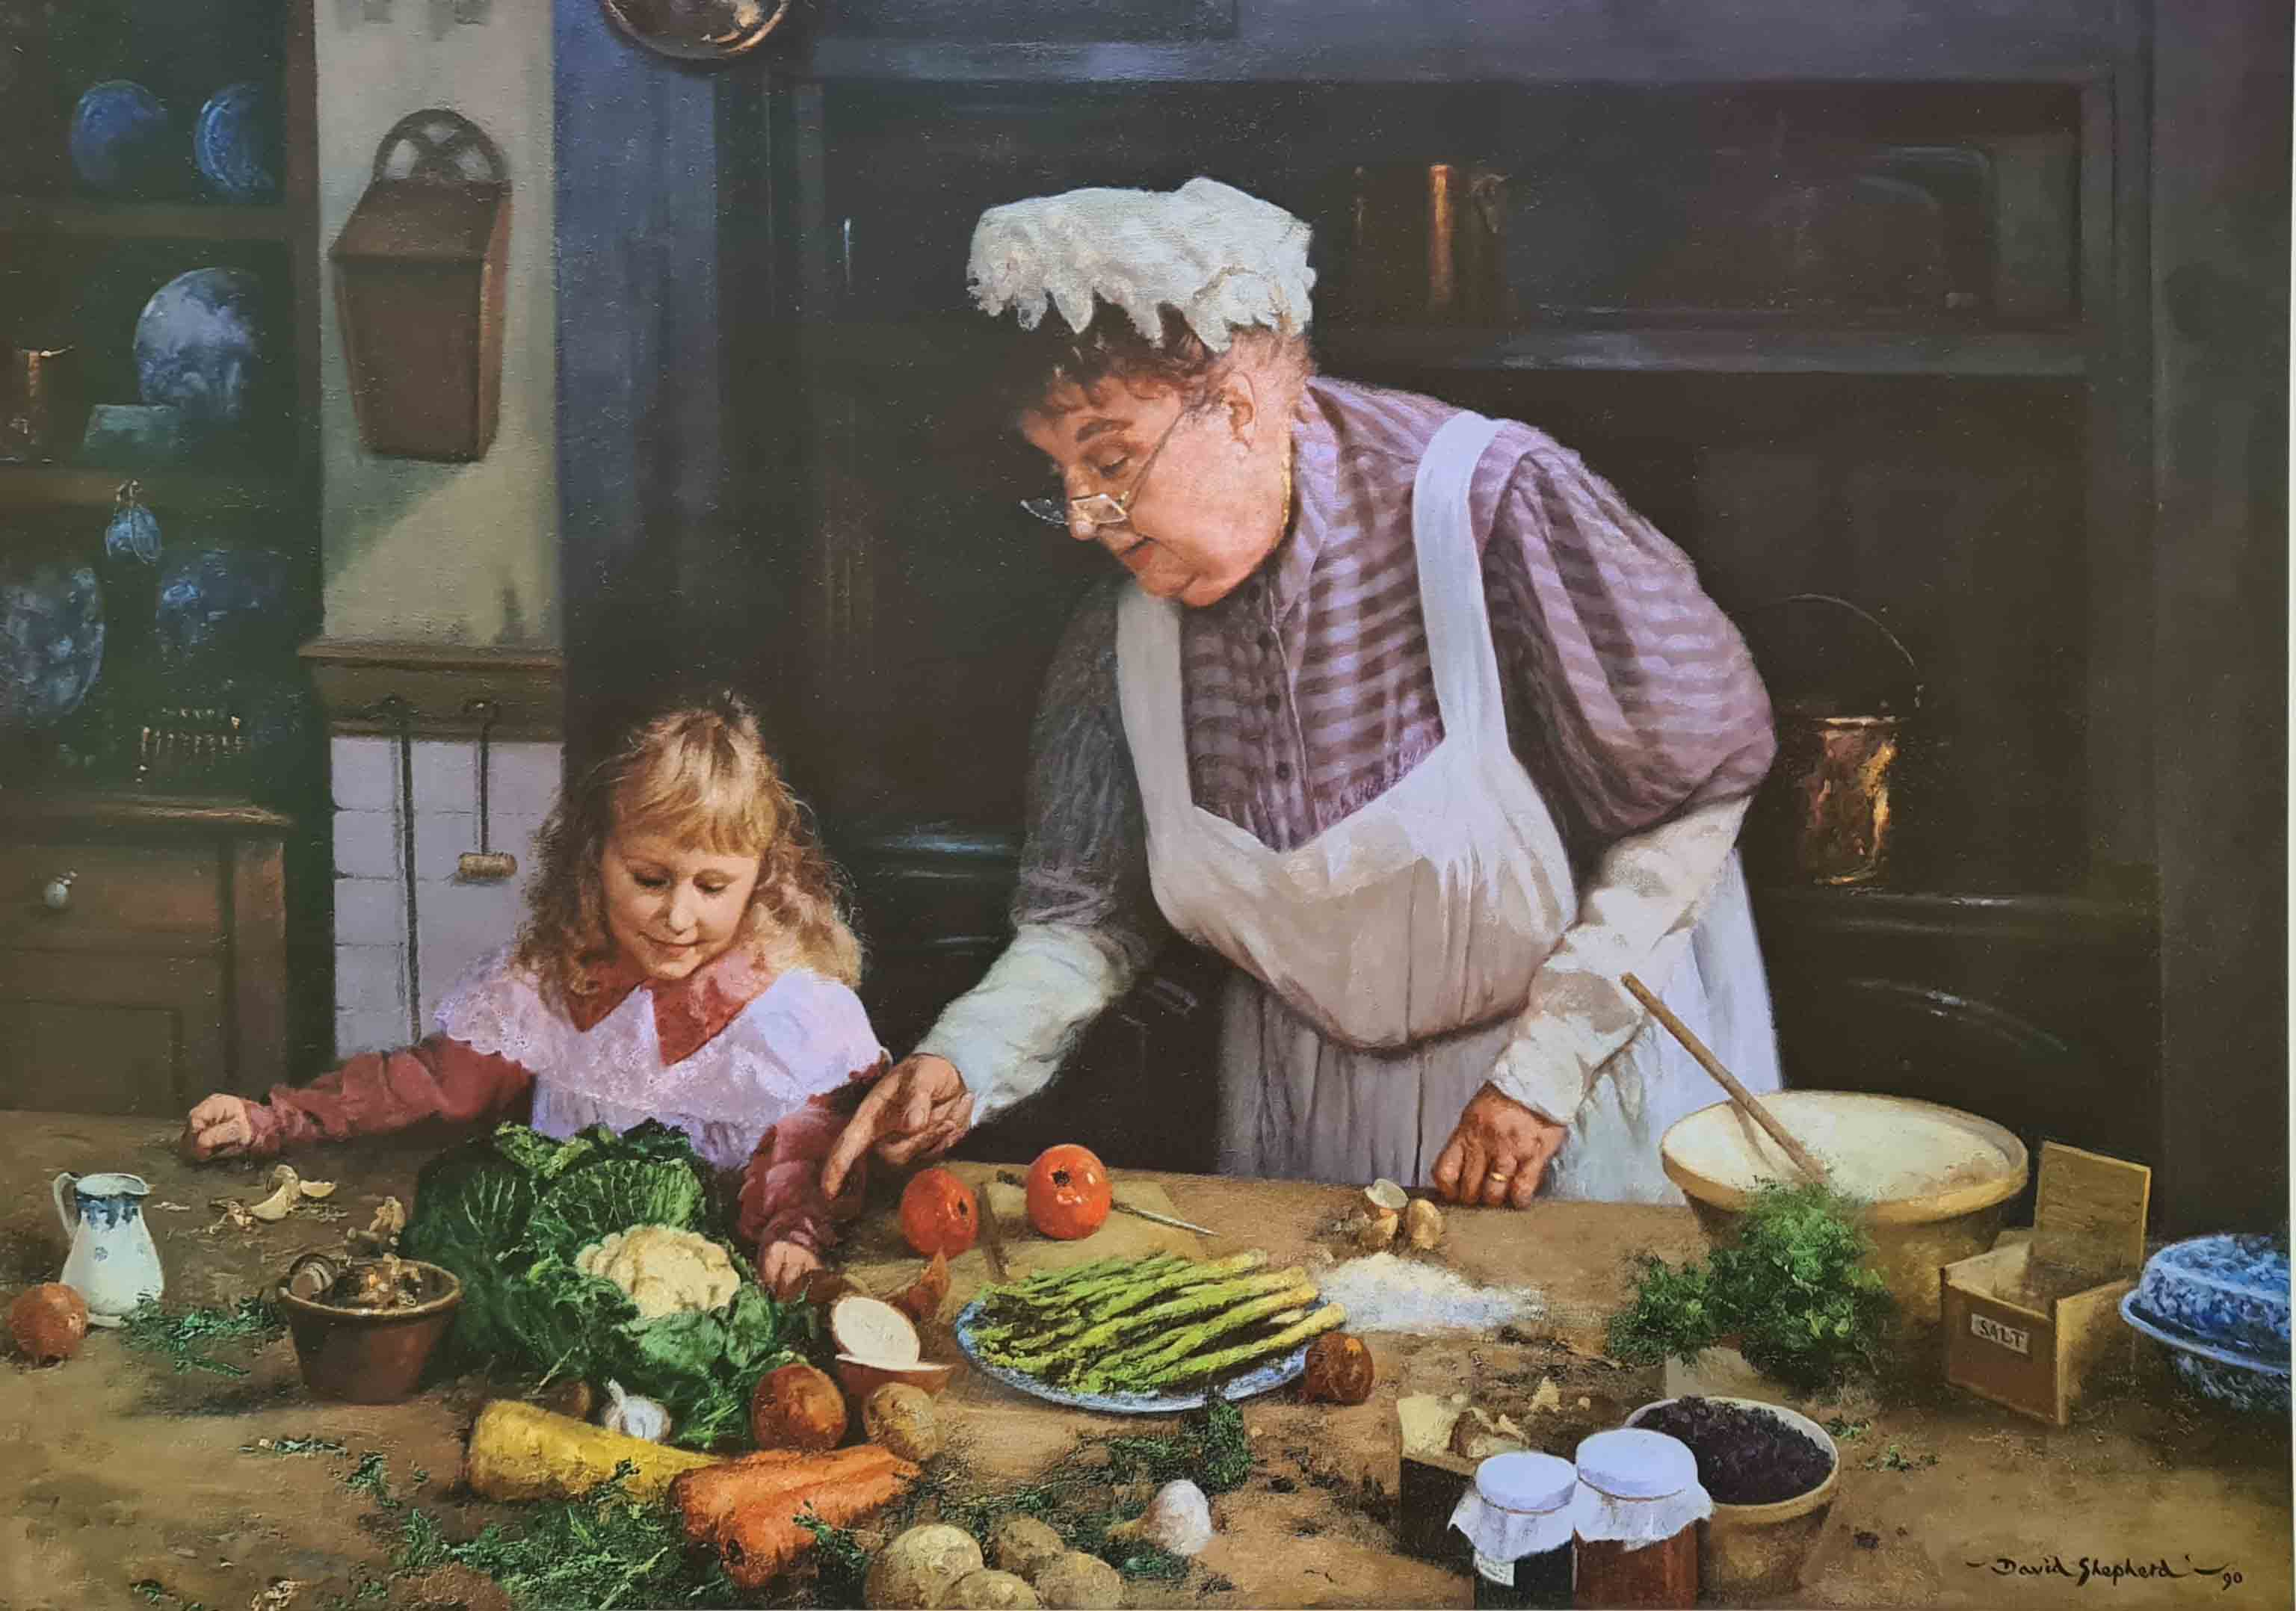 grannie's kitchen David Shepherd victorian scene print